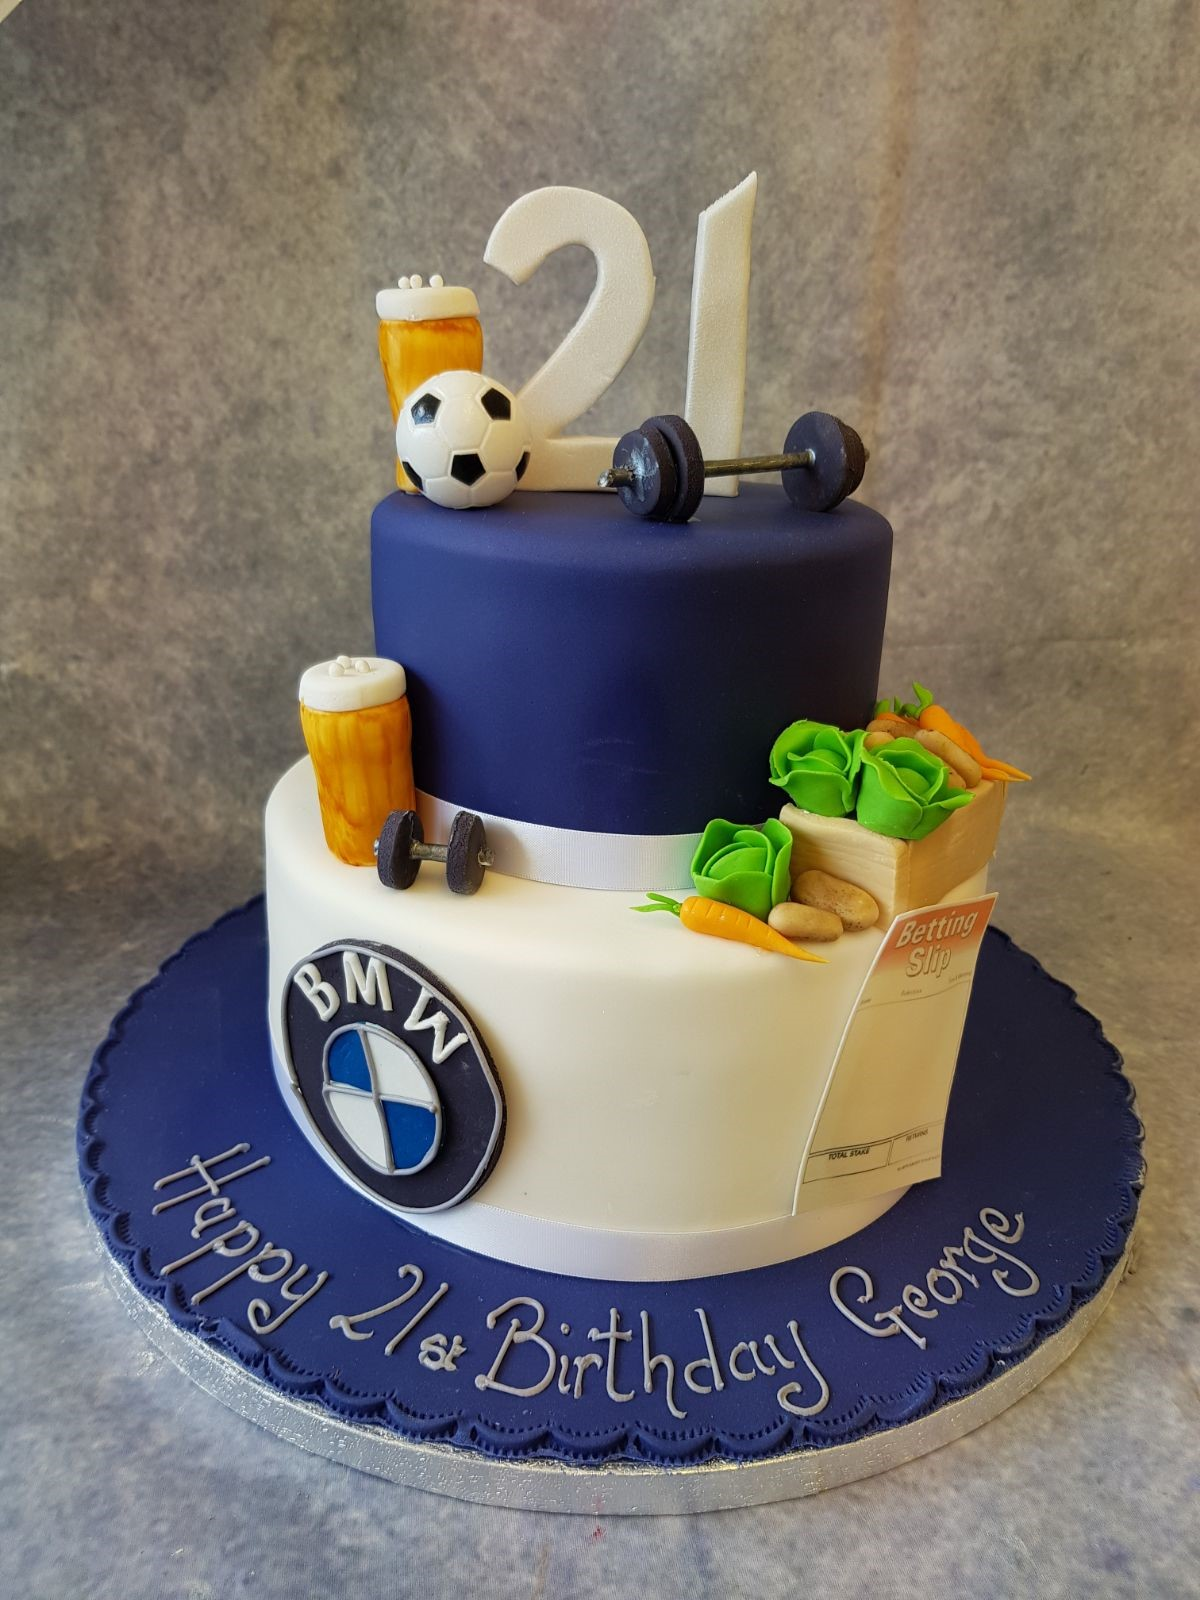 2 Tier 21st Birthday Ravens Bakery Of Essex Ltd